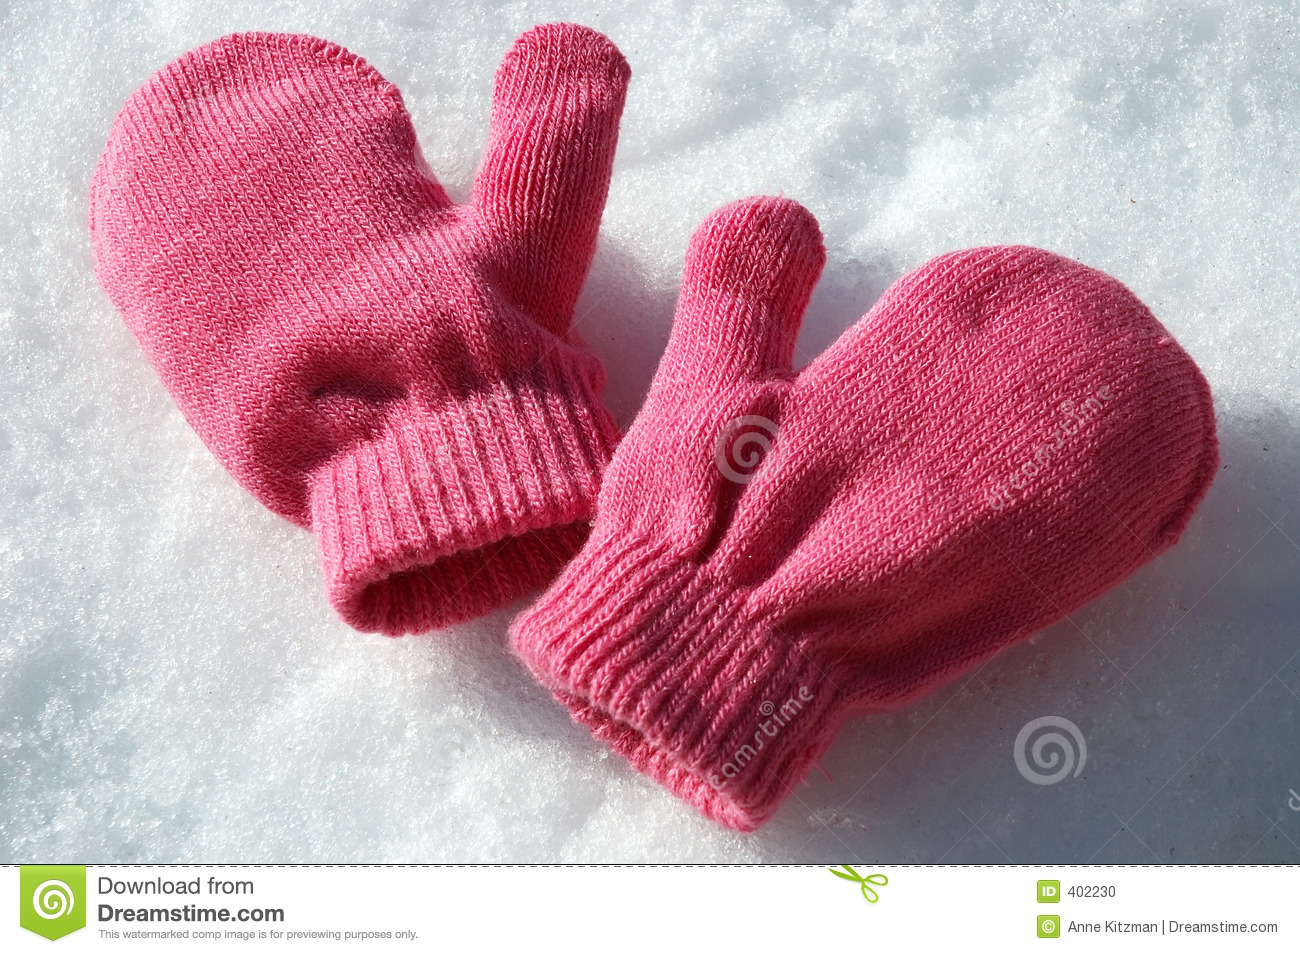 Pink Mittens Stock Photo - Image: 402230